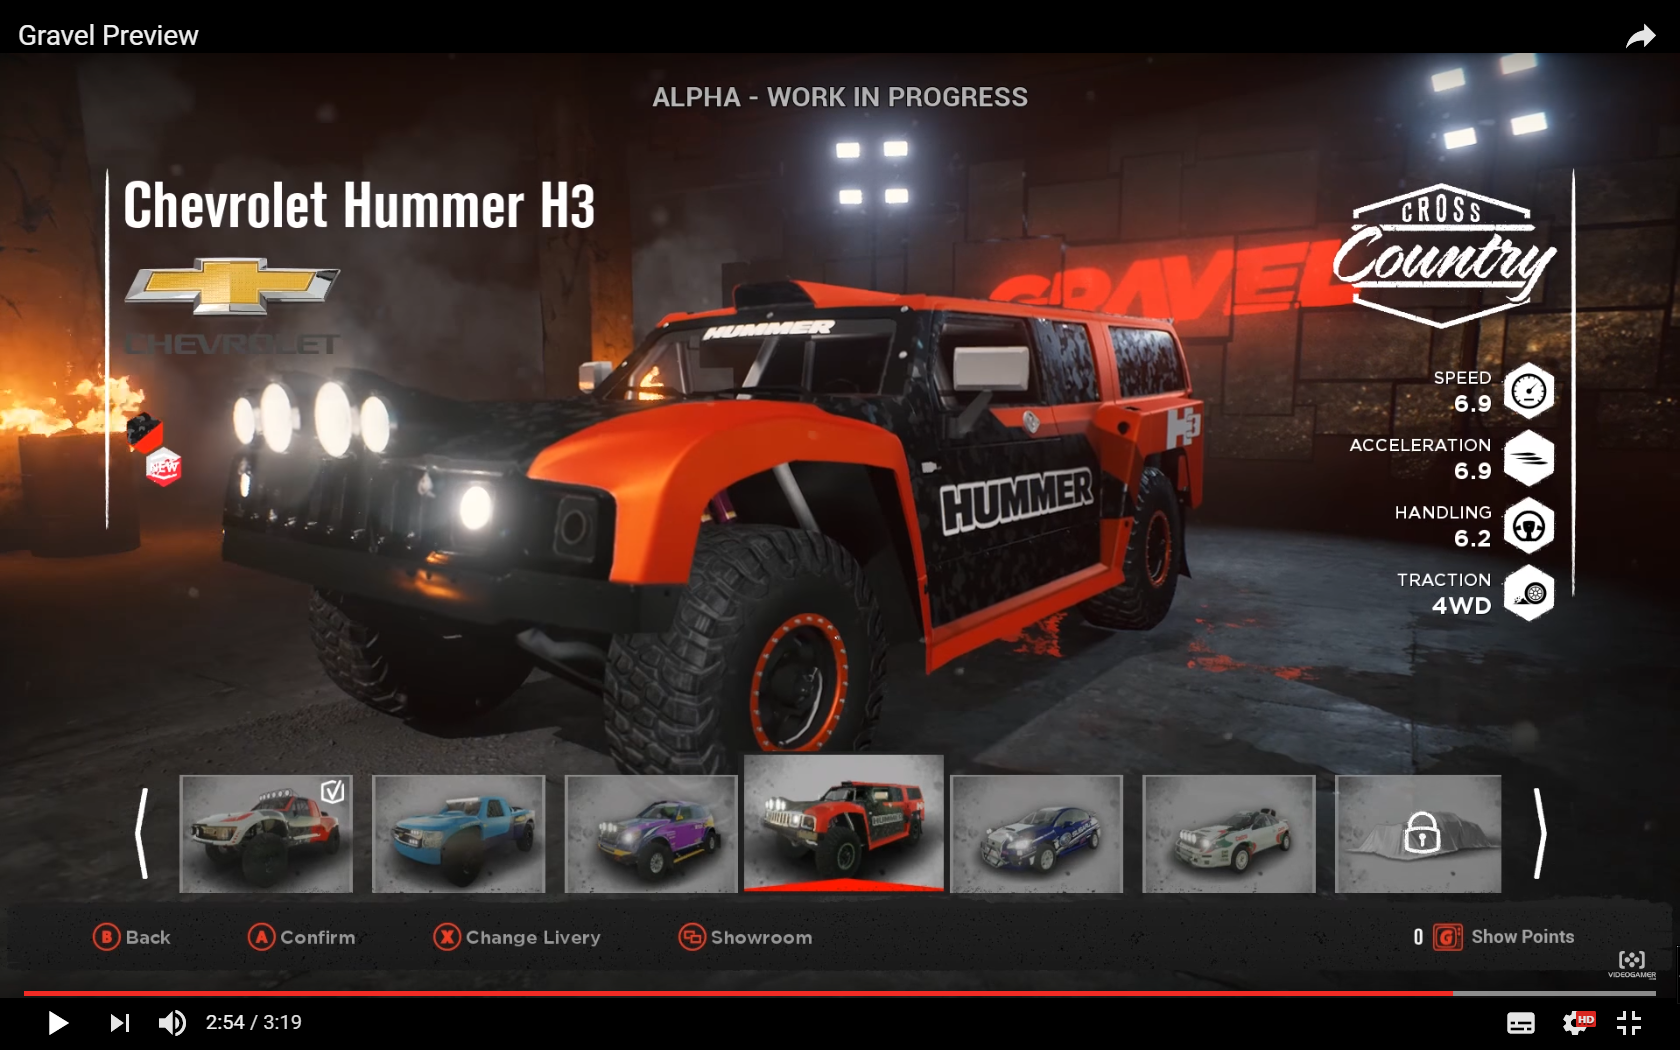 GRAVEL - screen garage car - Chevrolet Hummer H3